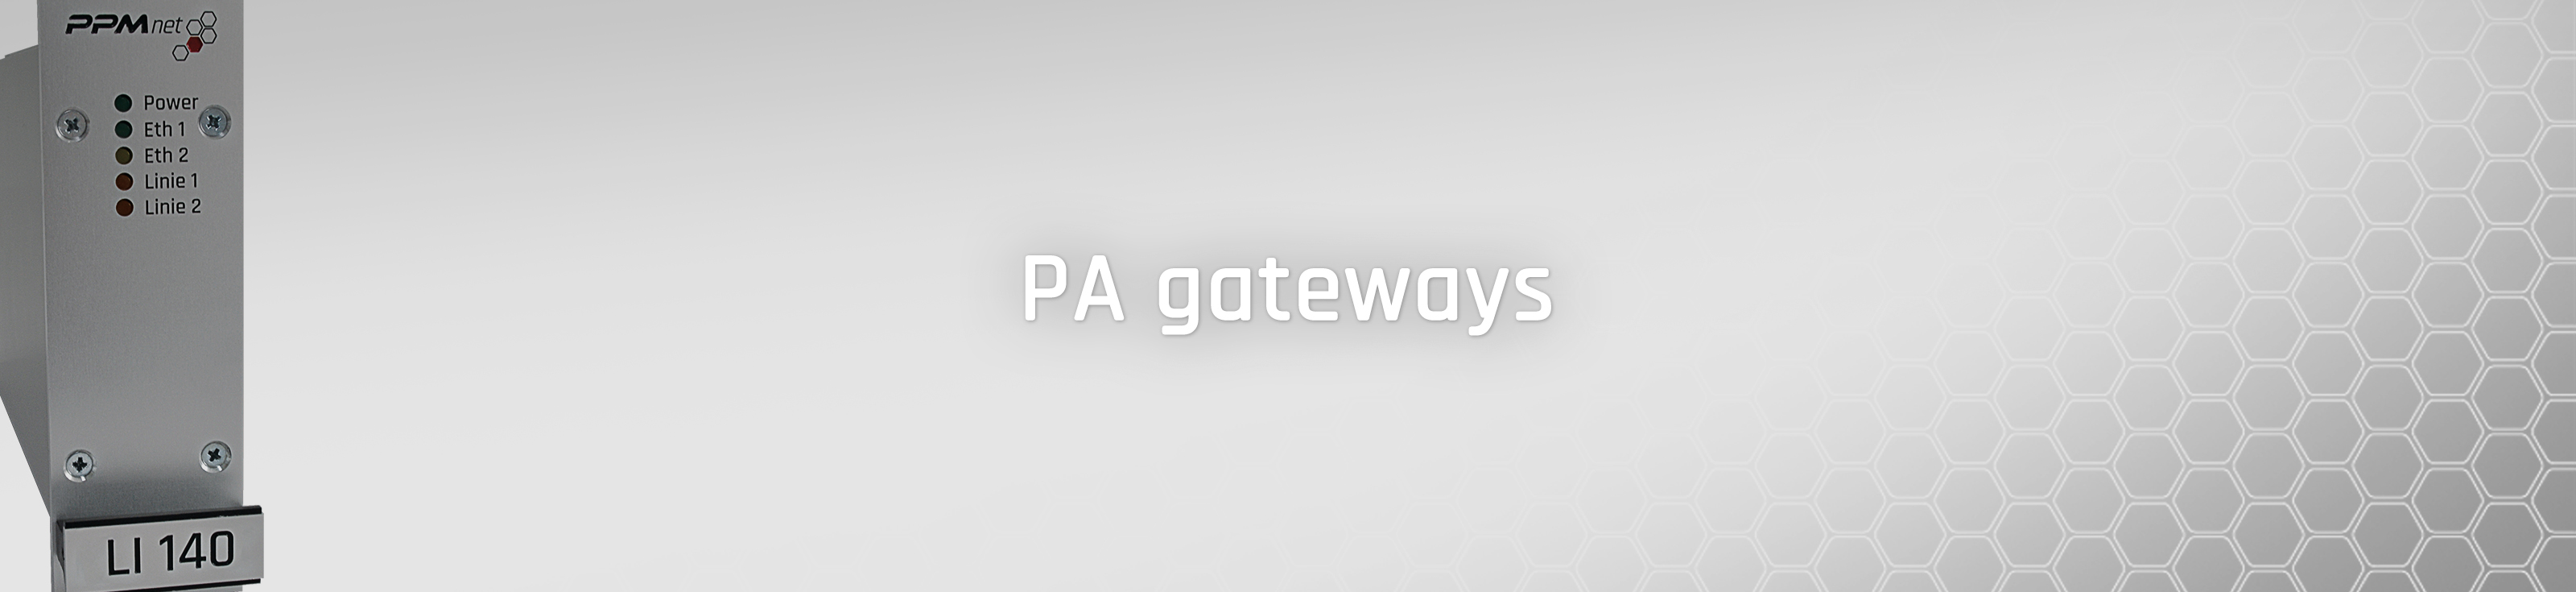 slider_pa_gateways_en